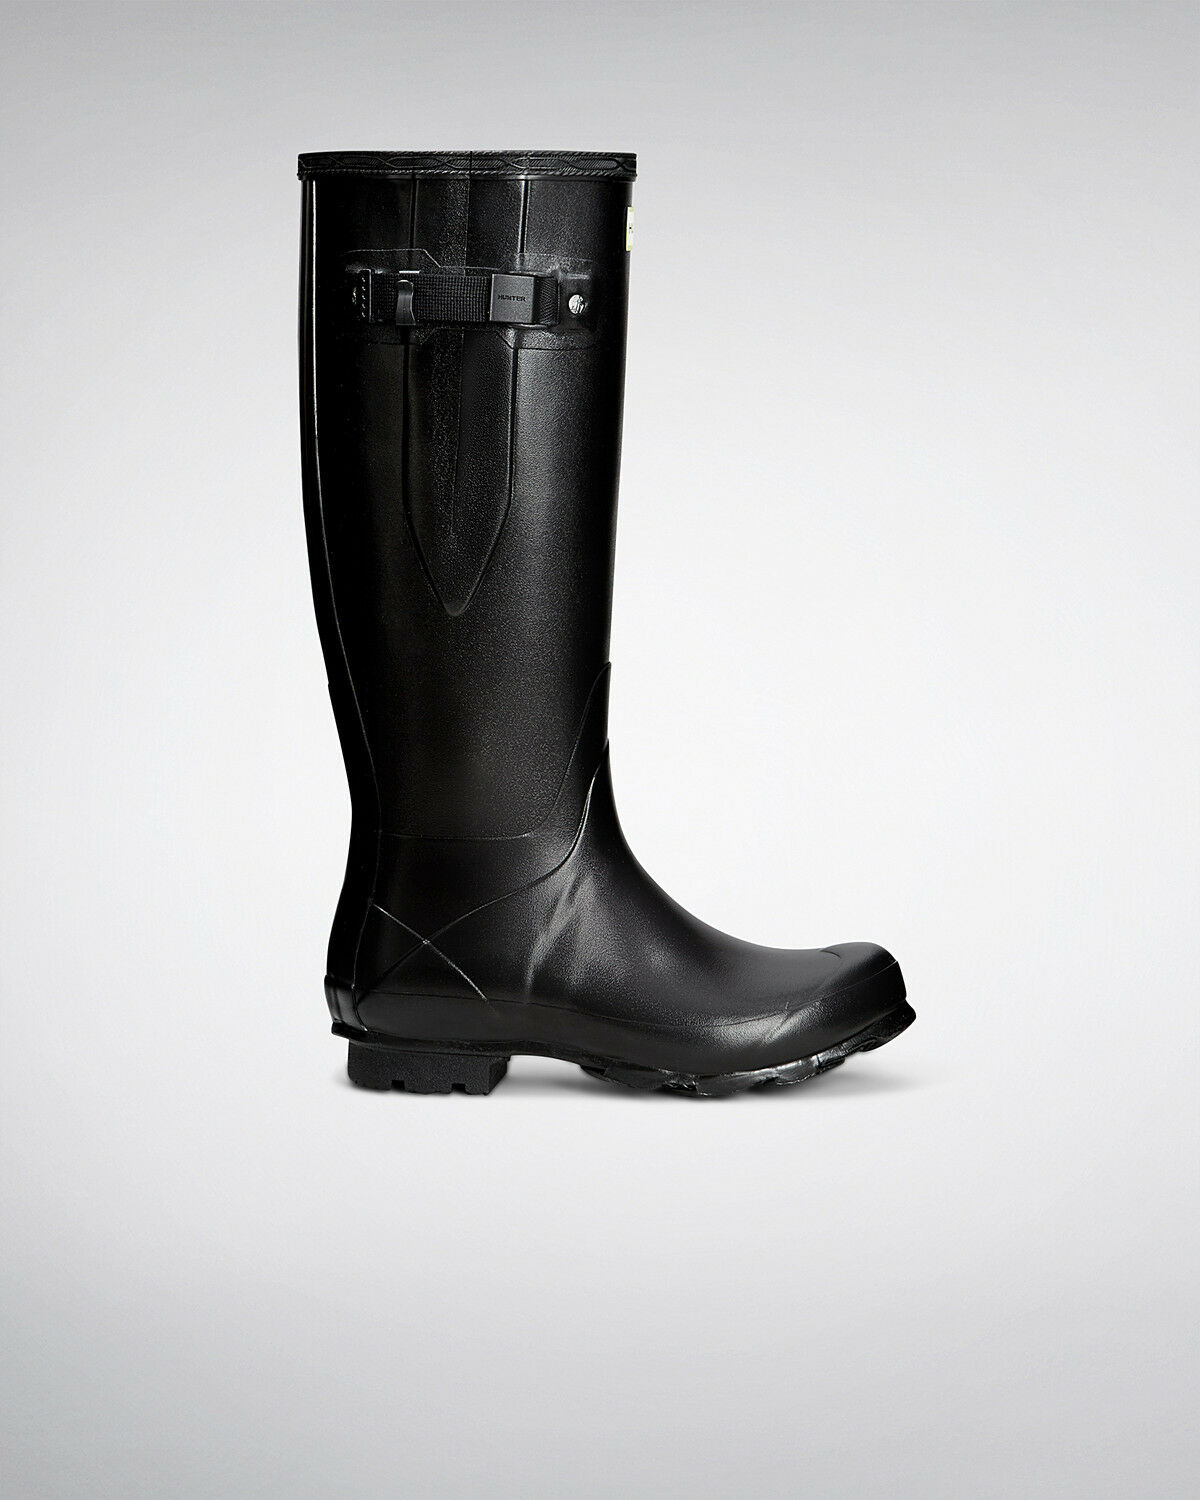 Hunter Wellington Boots Wellies Womens Norris Adjustable Black Size 8 Eu 42